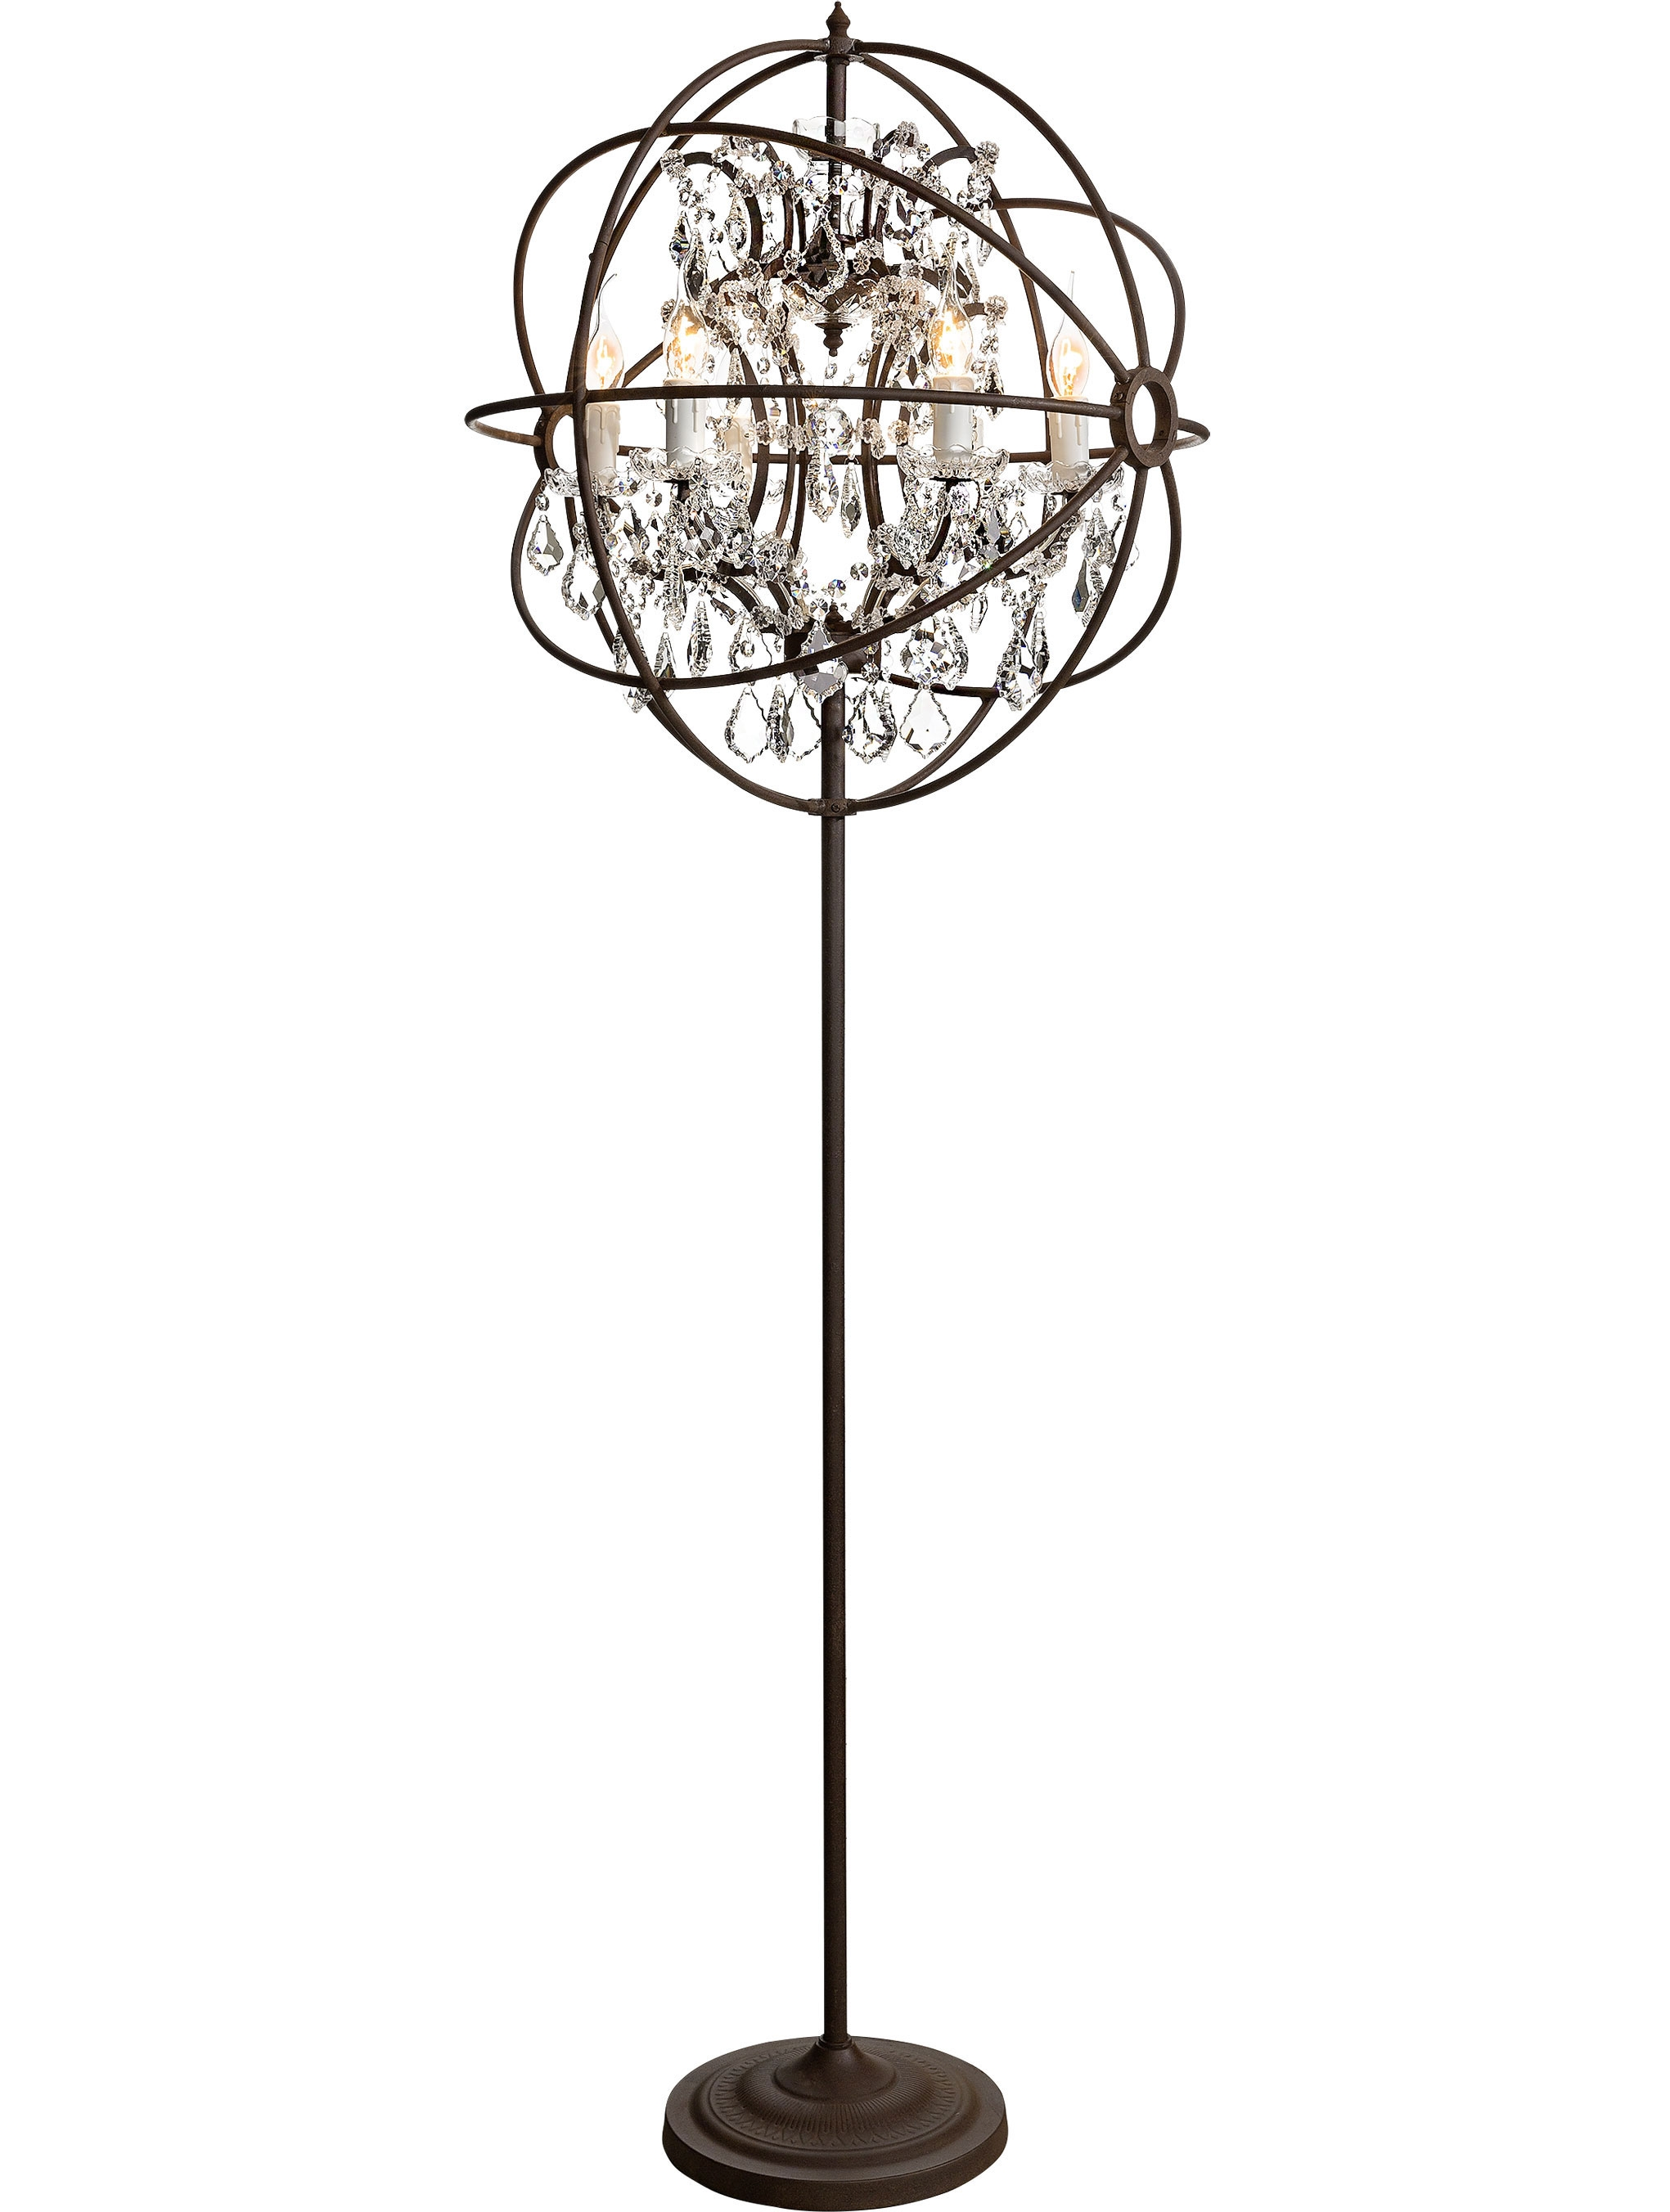 Standing Chandelier Floor Lamp Pixball Regarding Standing Chandeliers (View 4 of 25)